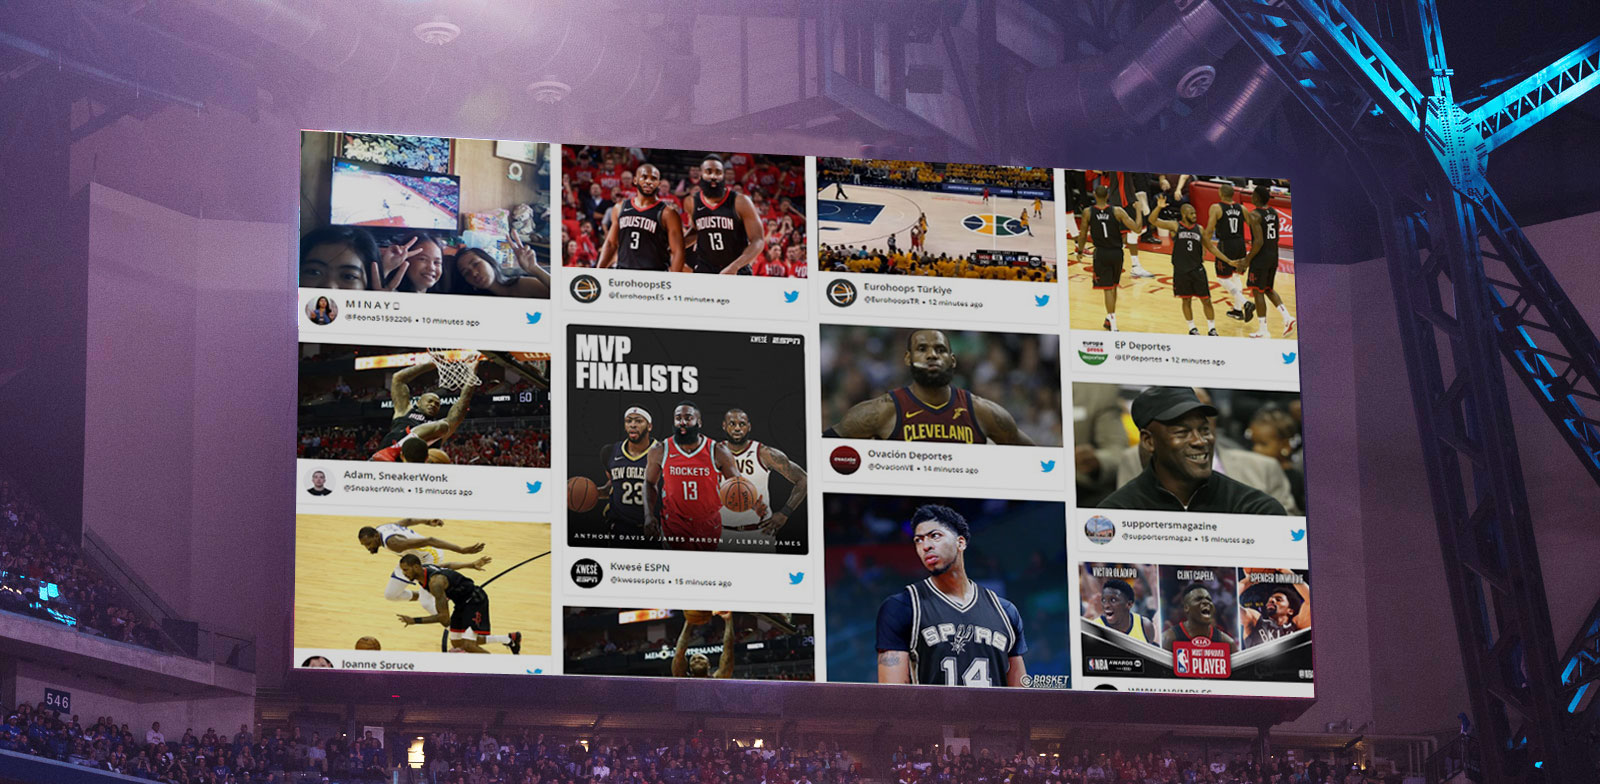 Social Wall at sports event